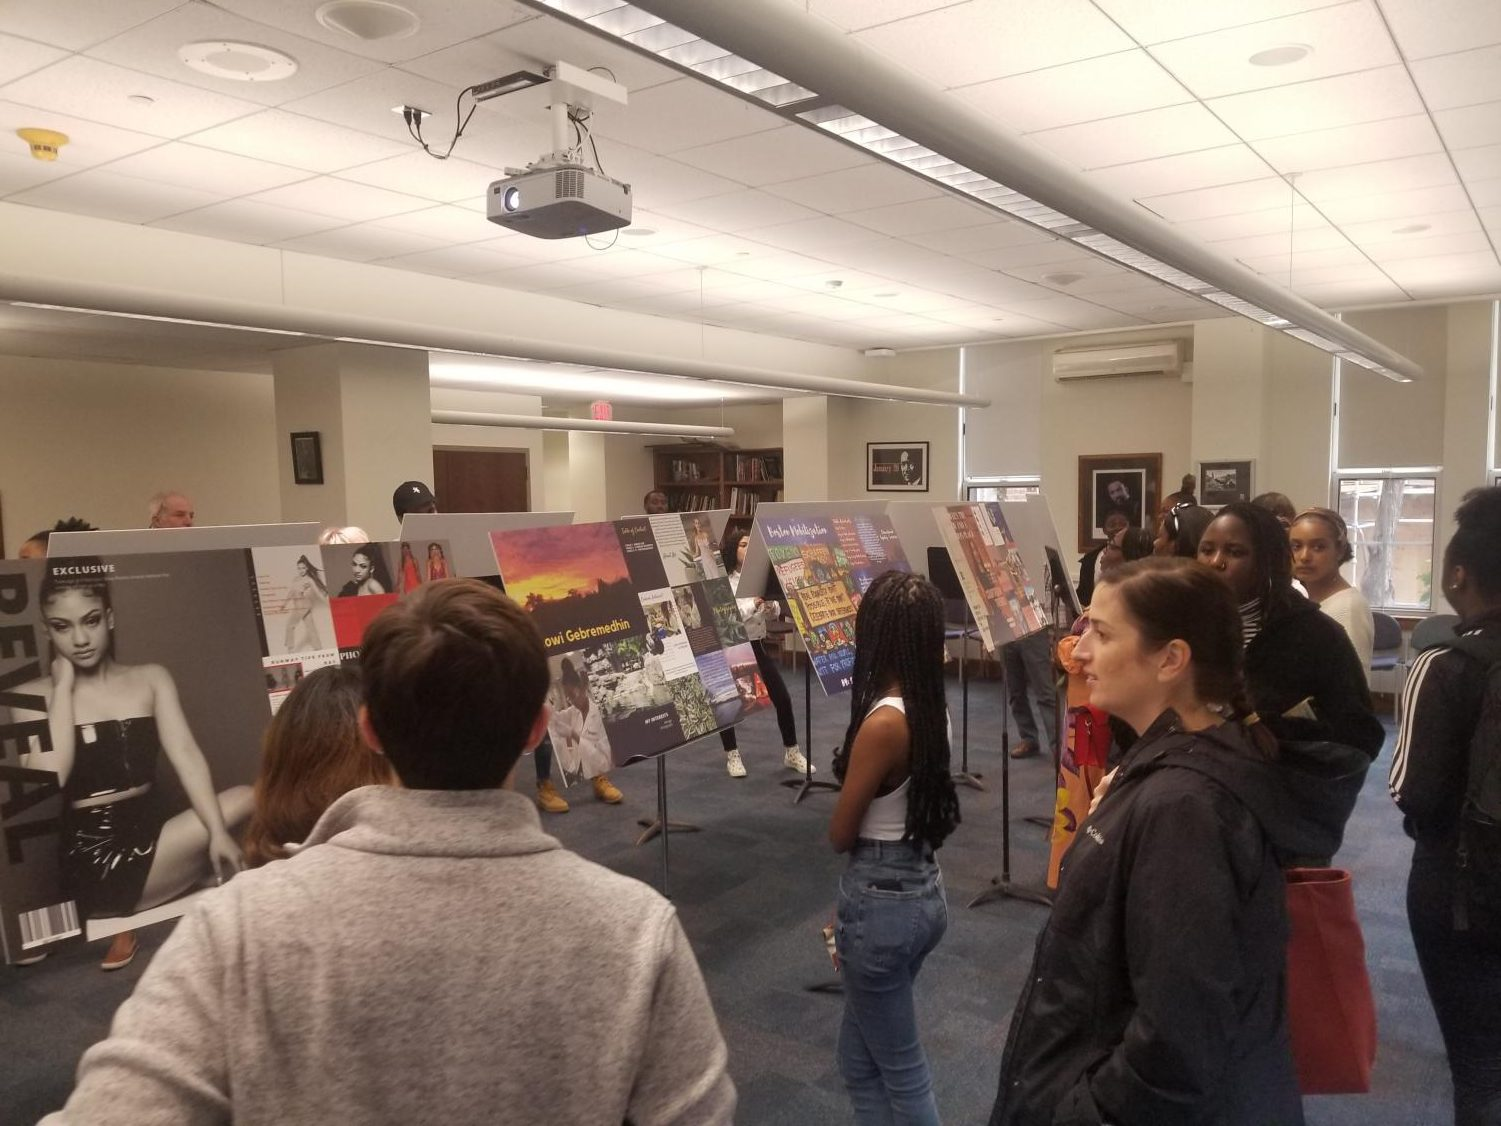 Visitors in the MLK room during X-block Thursday Oct. 10, view the final portfolios of students in the LiveInspired program.